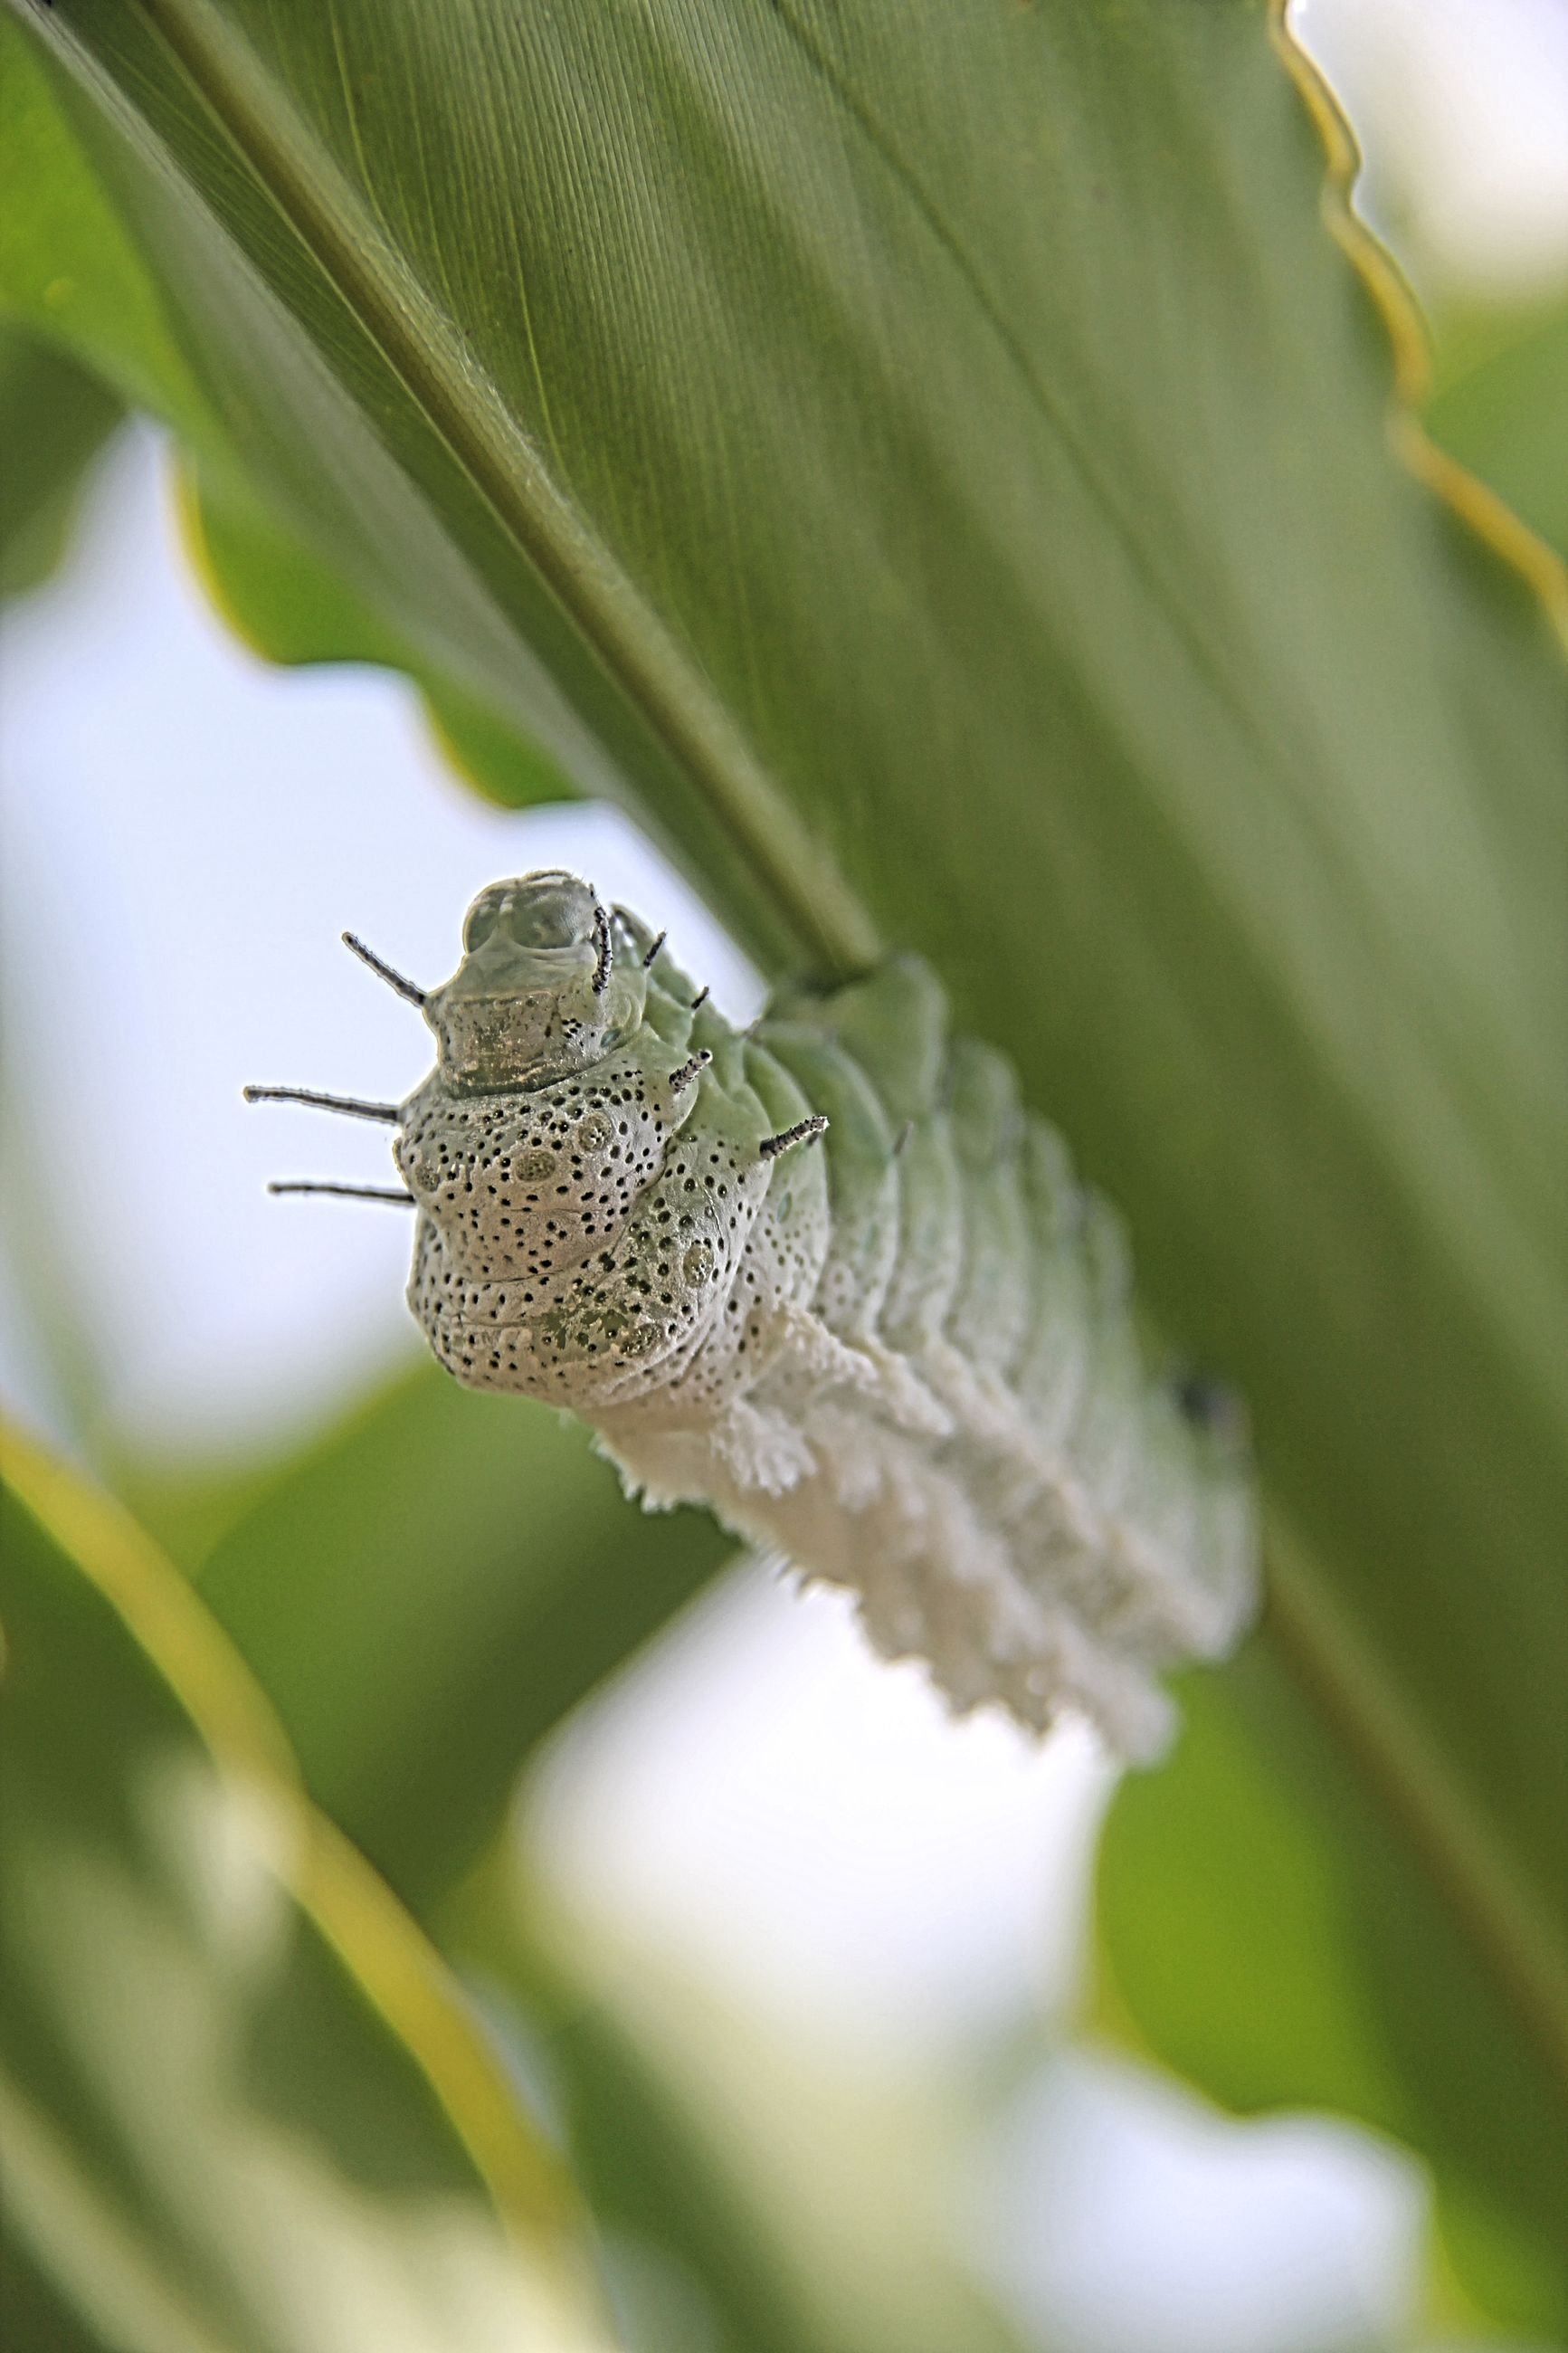 Close-up of caterpillar on leaf